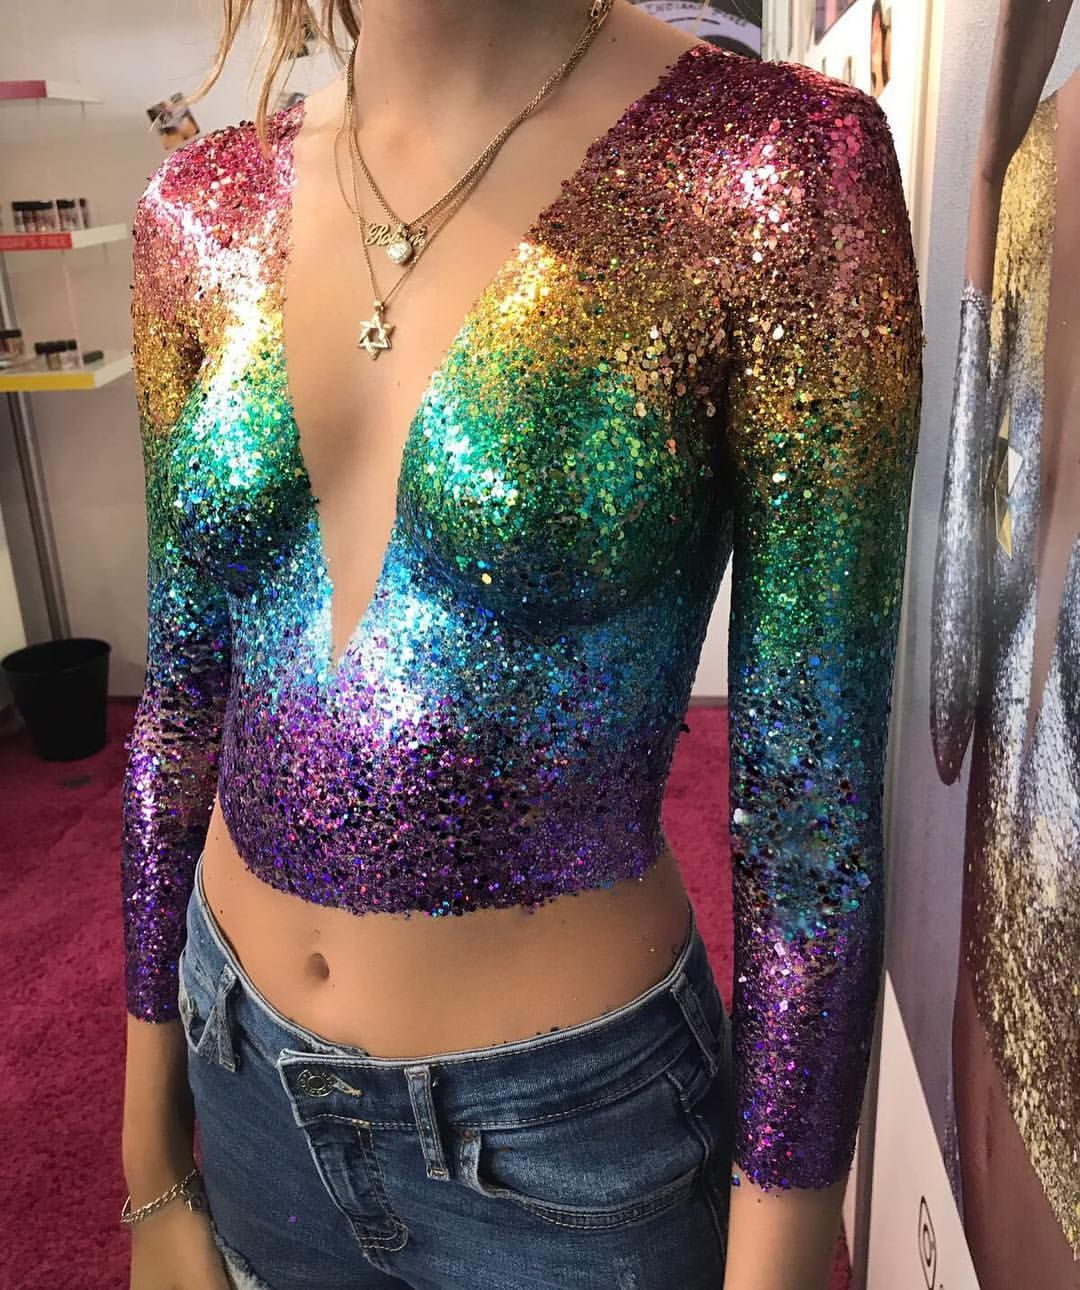 32651166031473550 Glitter Outfit Pride Outfit Festival Glitter